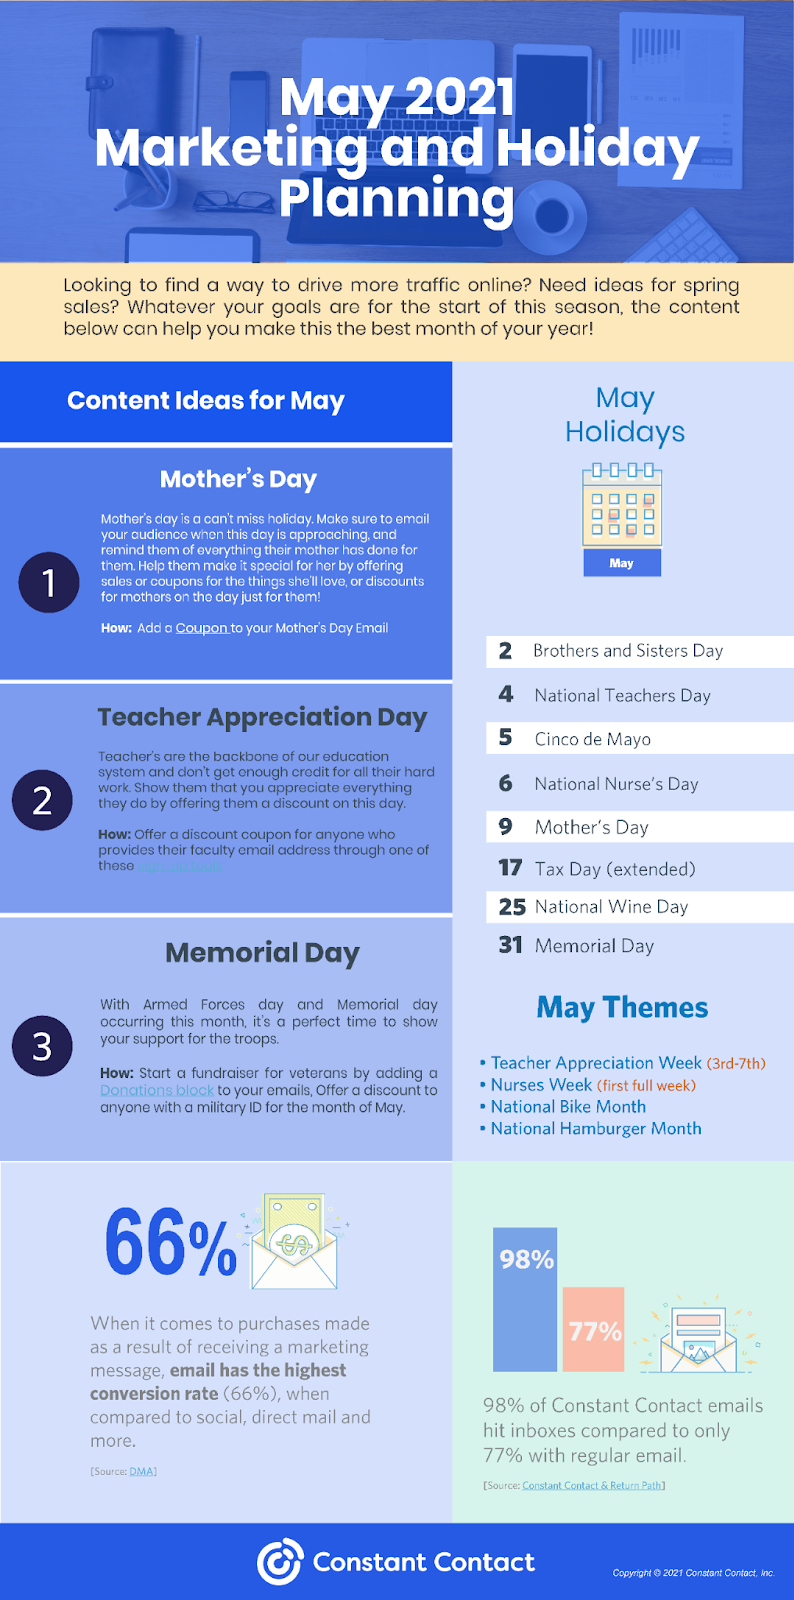 May holidays marketing planning guide infographic